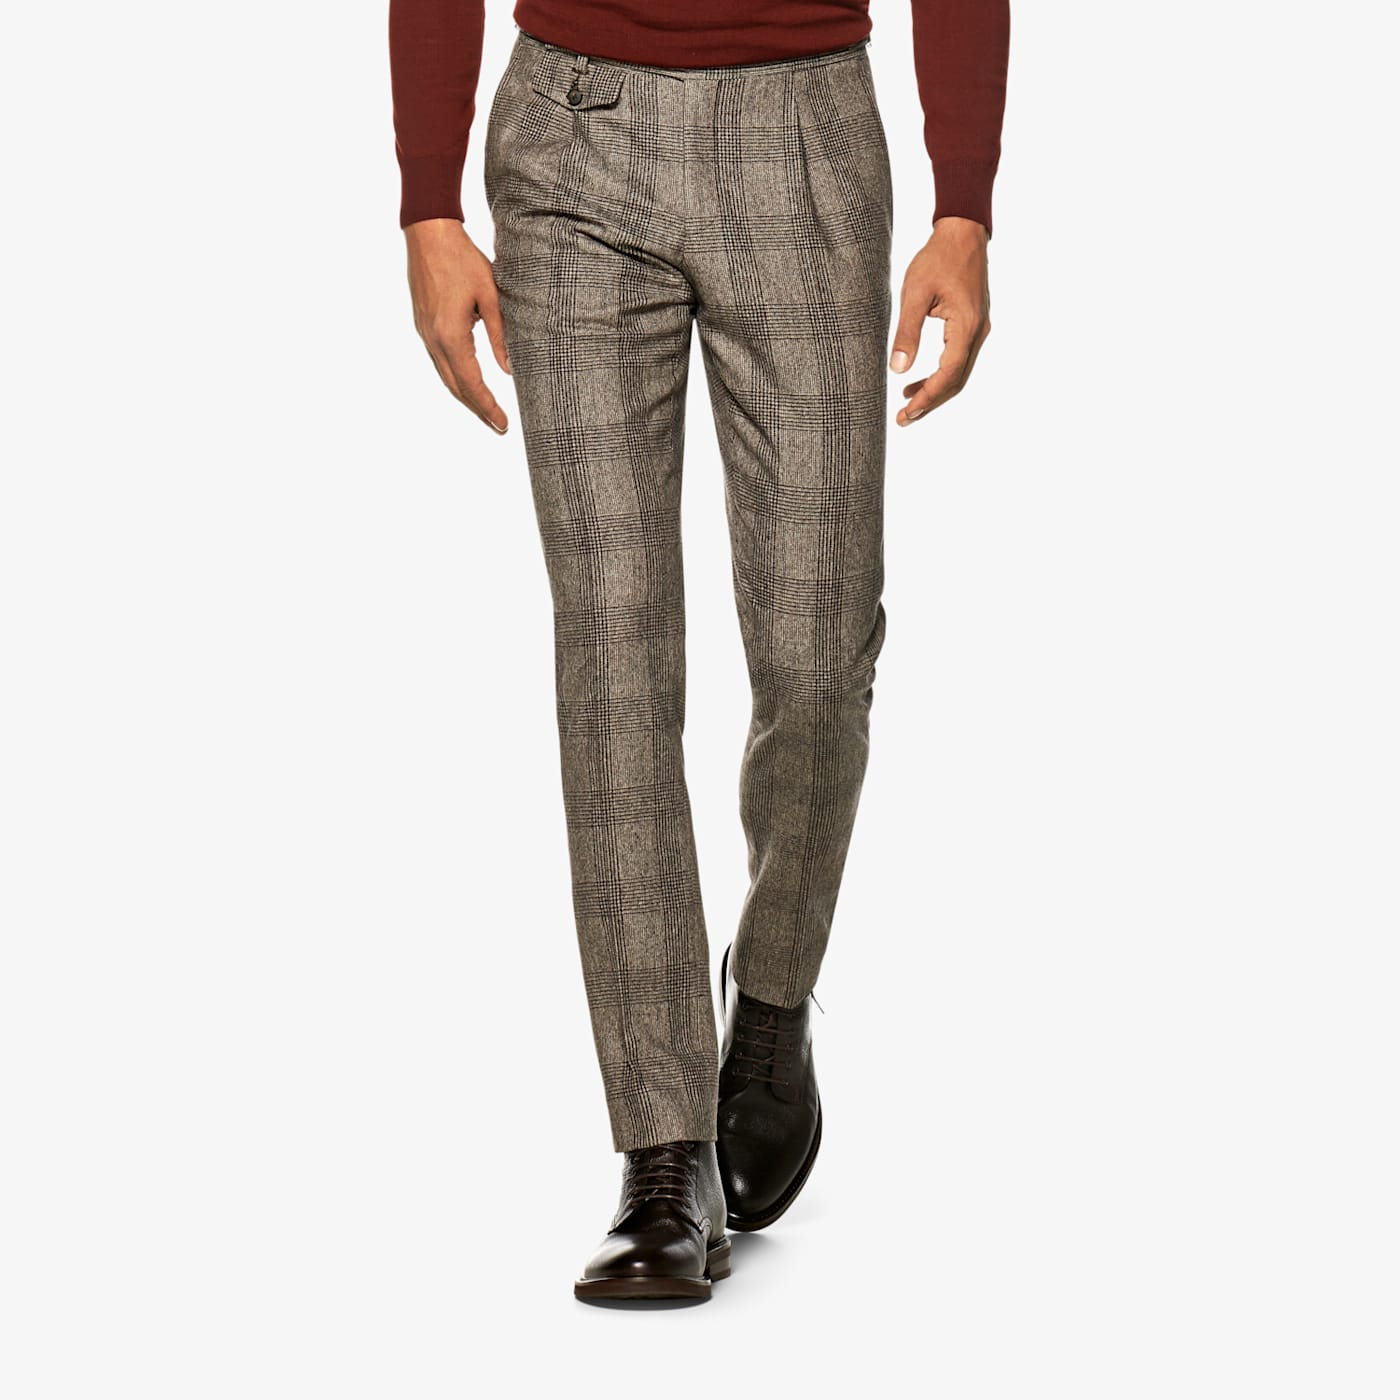 60s – 70s Mens Bell Bottom Jeans, Flares, Disco Pants Mid Brown Pleated Brentwood Trousers $209.00 AT vintagedancer.com